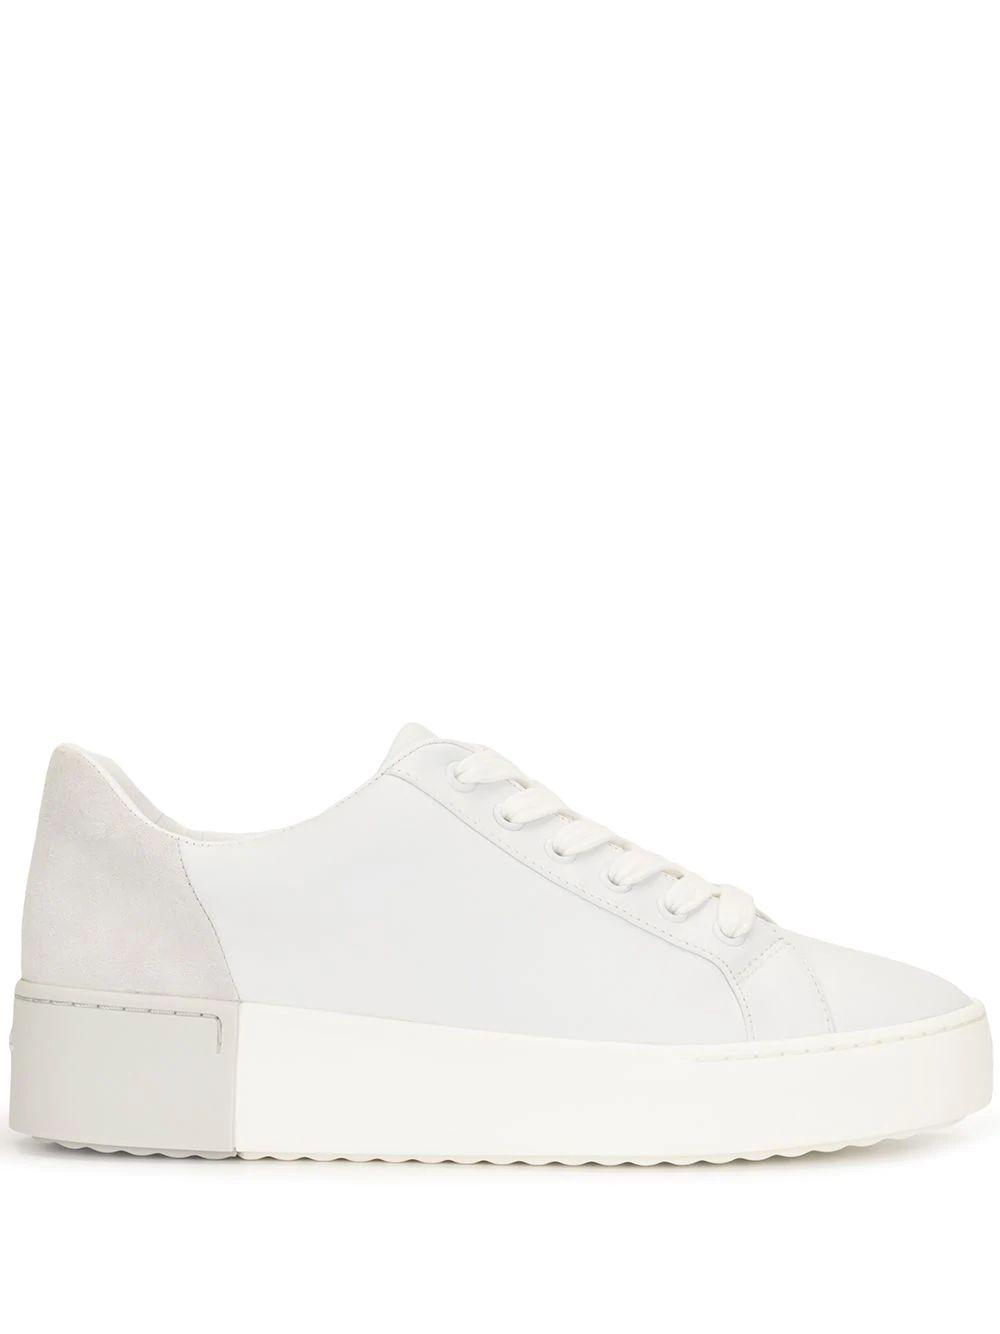 Bensley Two-Tone Sneaker